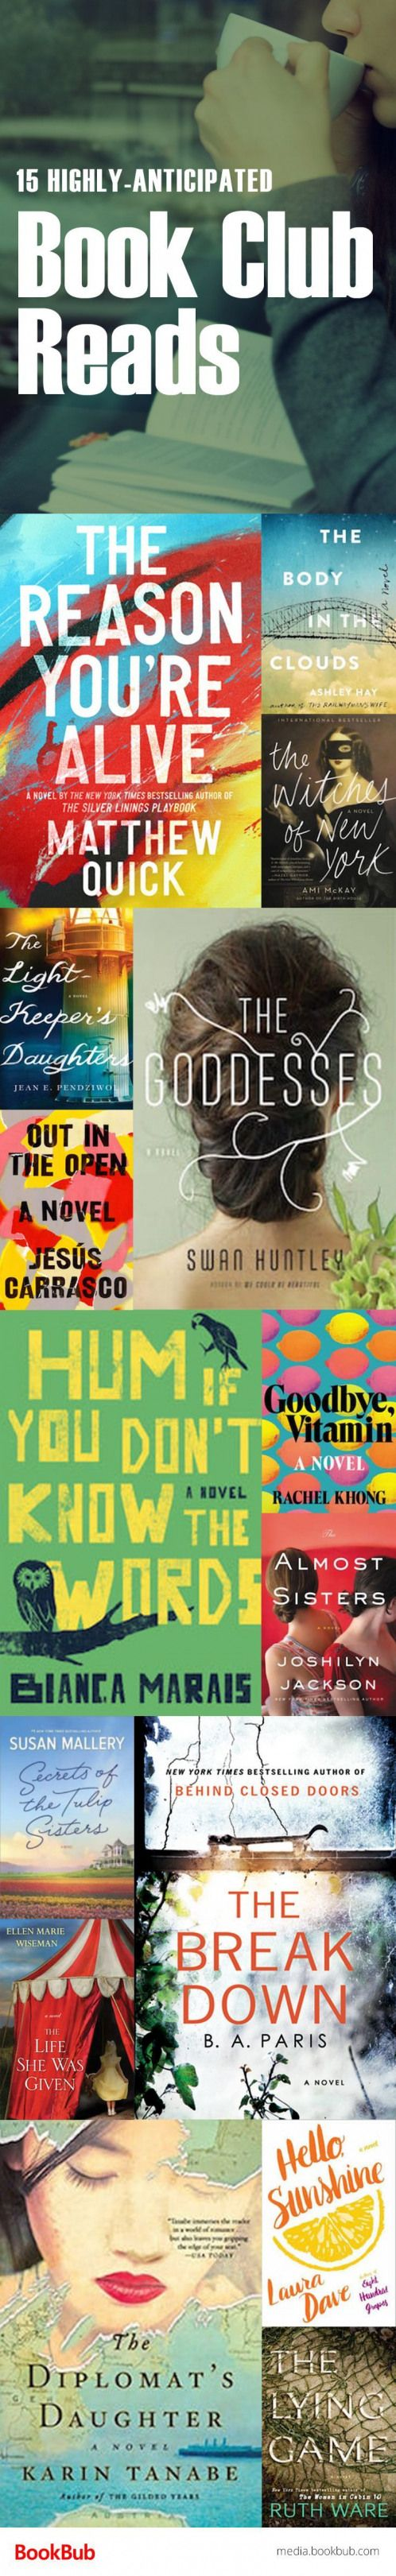 15 highly-anticipated book club books. These book club ideas feature a range of books your book club is sure to love including historical fiction thrillers and more! Great books for women too. #vitamins #hum #vitamins